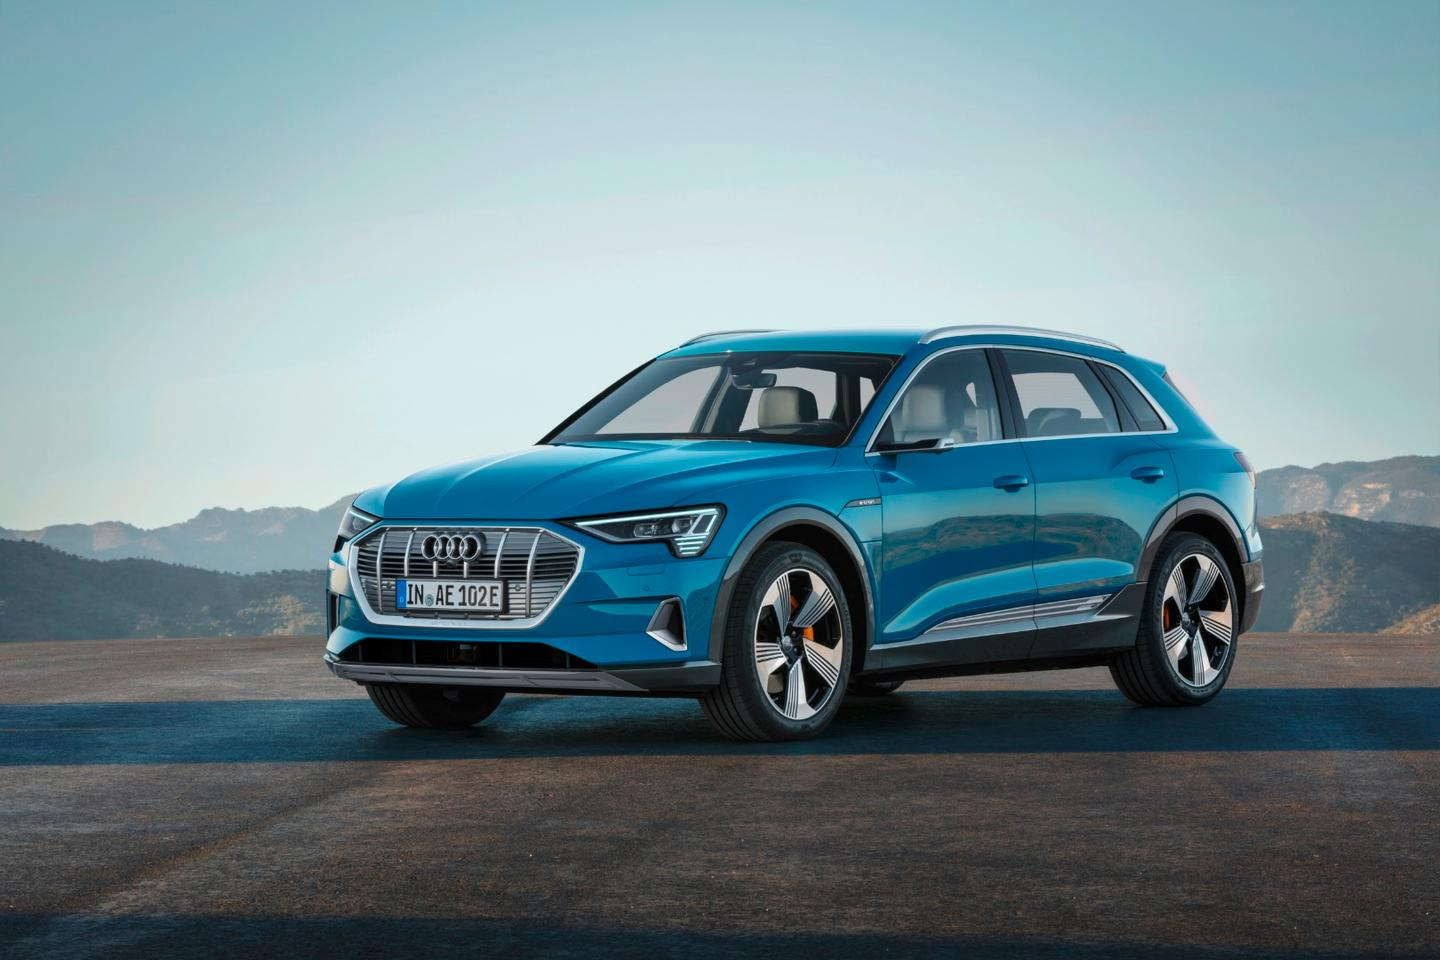 2019 Audi e-tron: AWD electric SUV